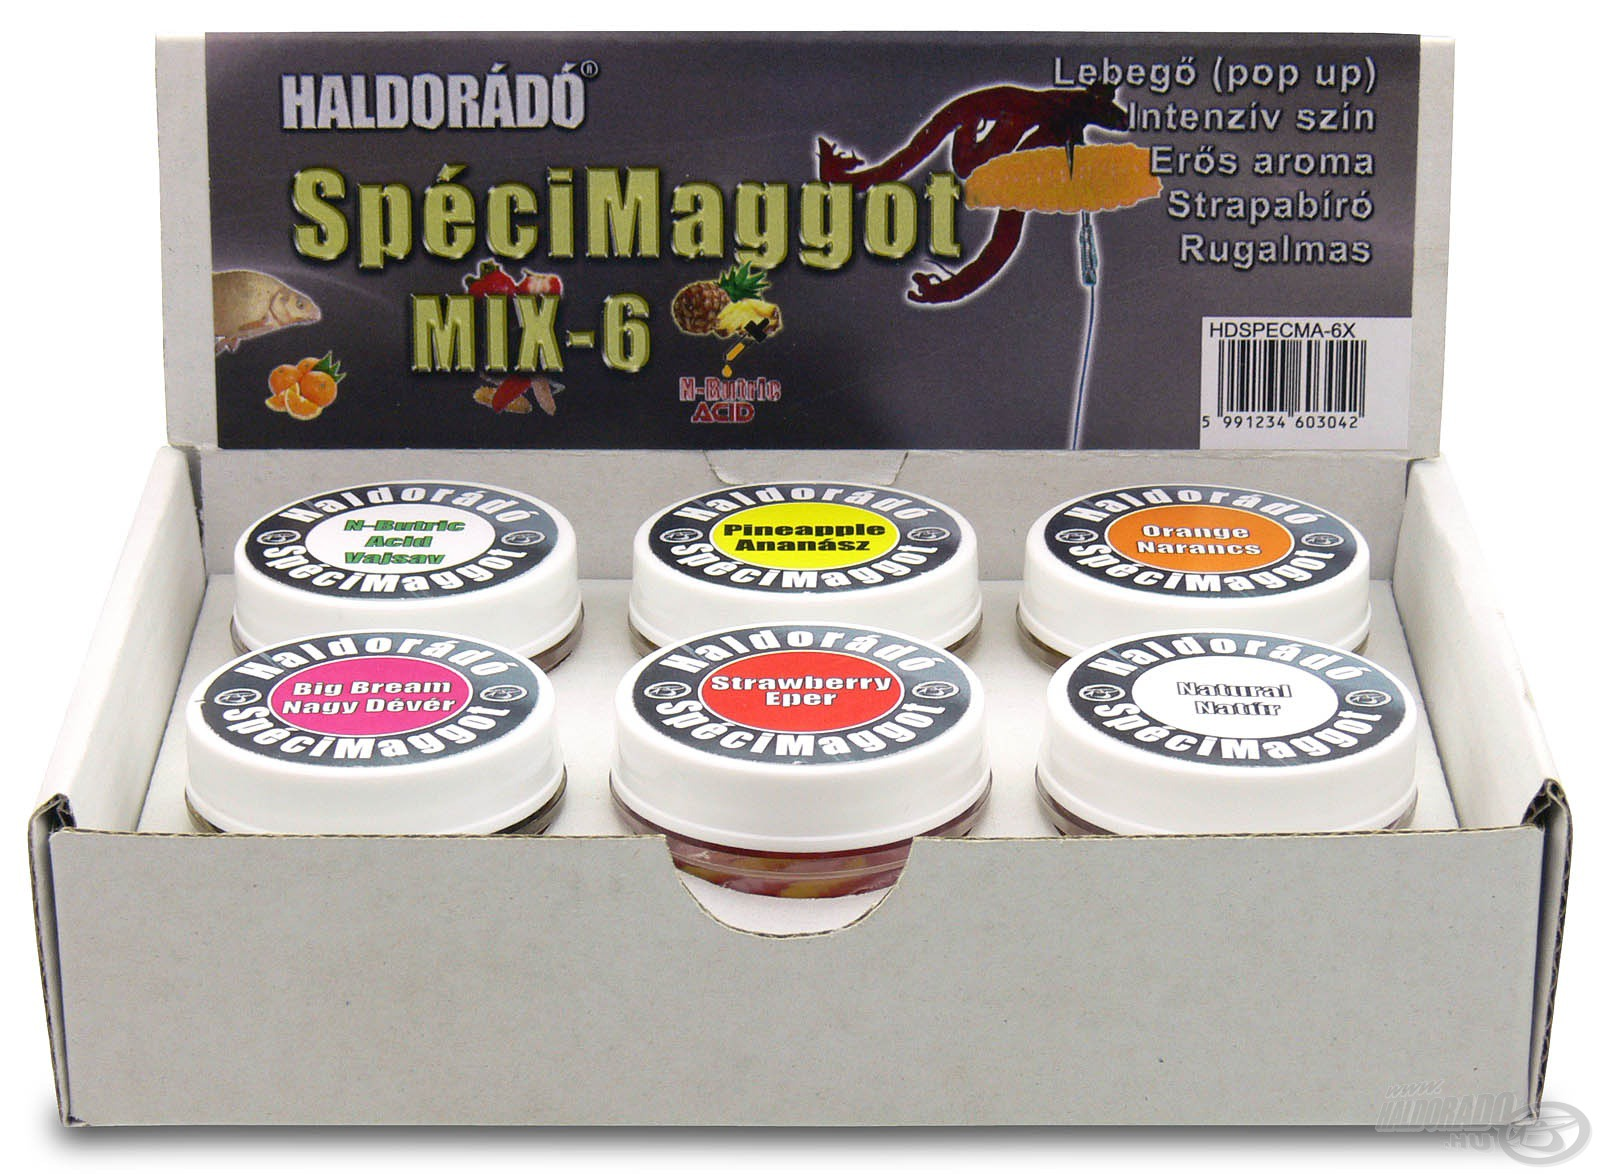 HALDOR�D�, Sp�ciCorn, -, MIX-6 6530, helyett, 5490Ft